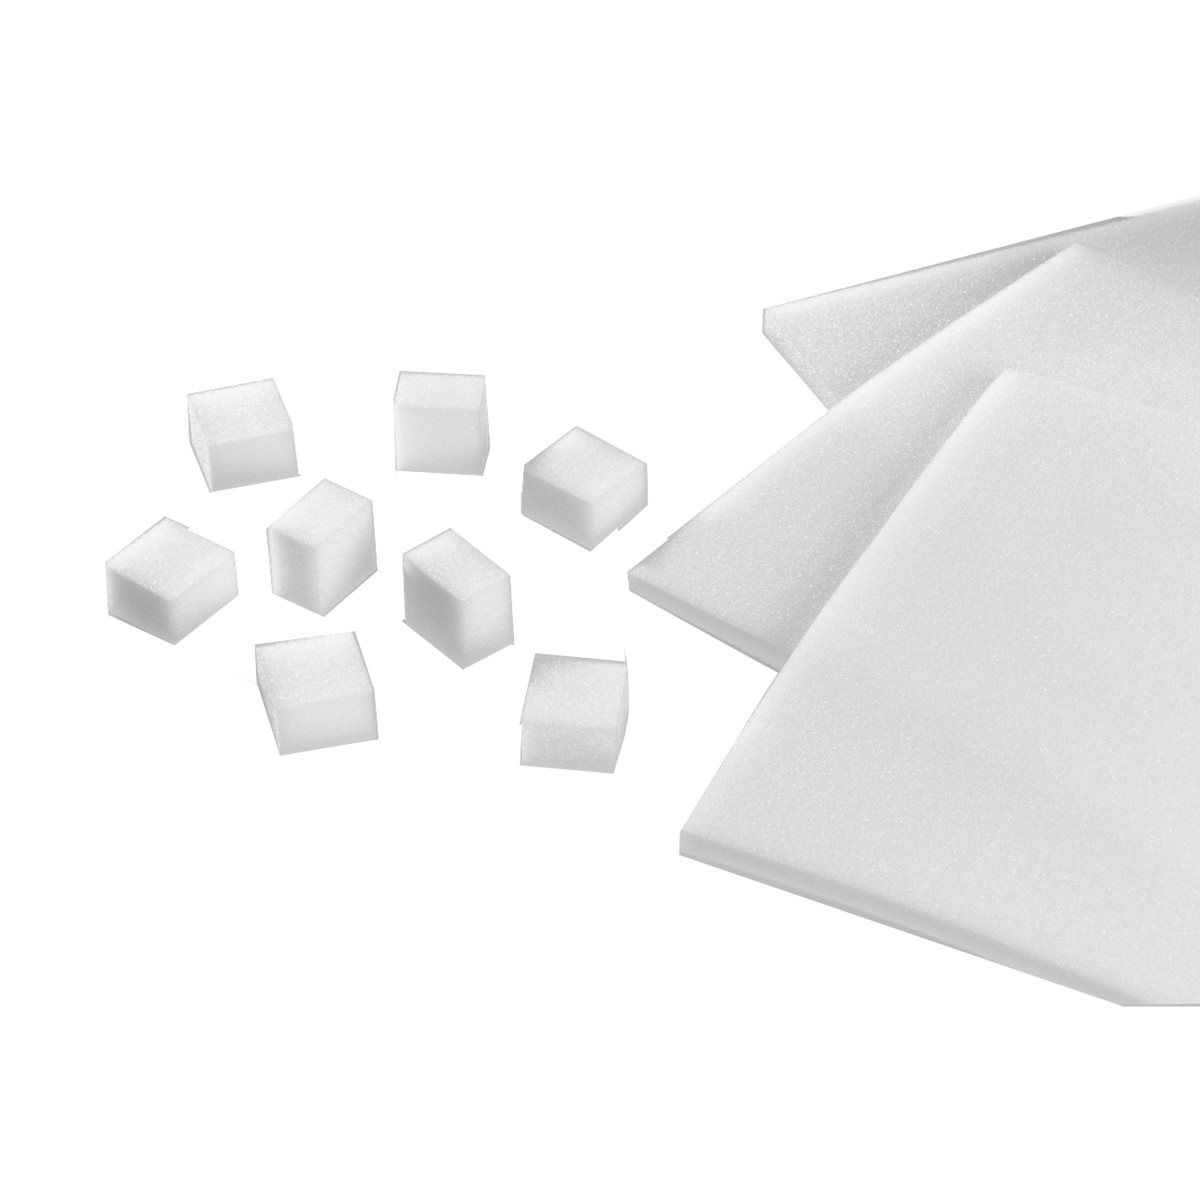 Foam Cubes and Sheets Image